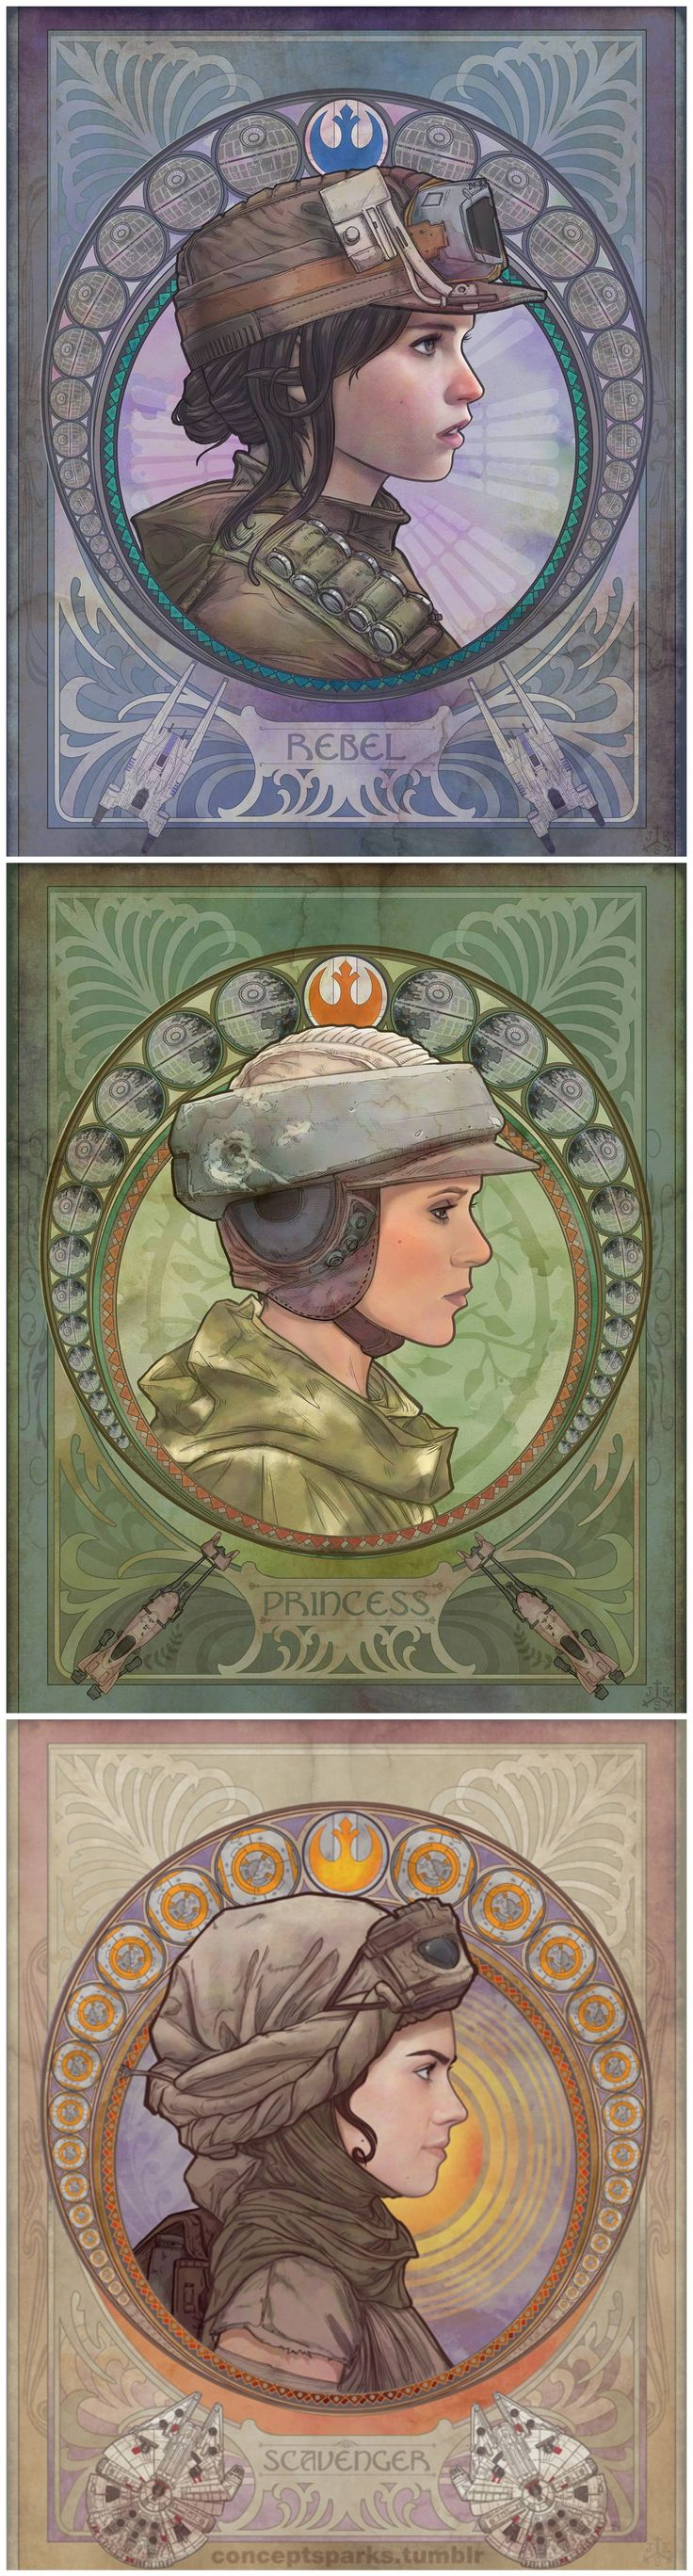 """""""May the force be with her. One, an outsider, the other, royalty. One unknown. All Heroes."""" http://amzn.to/2qWZ2qa"""